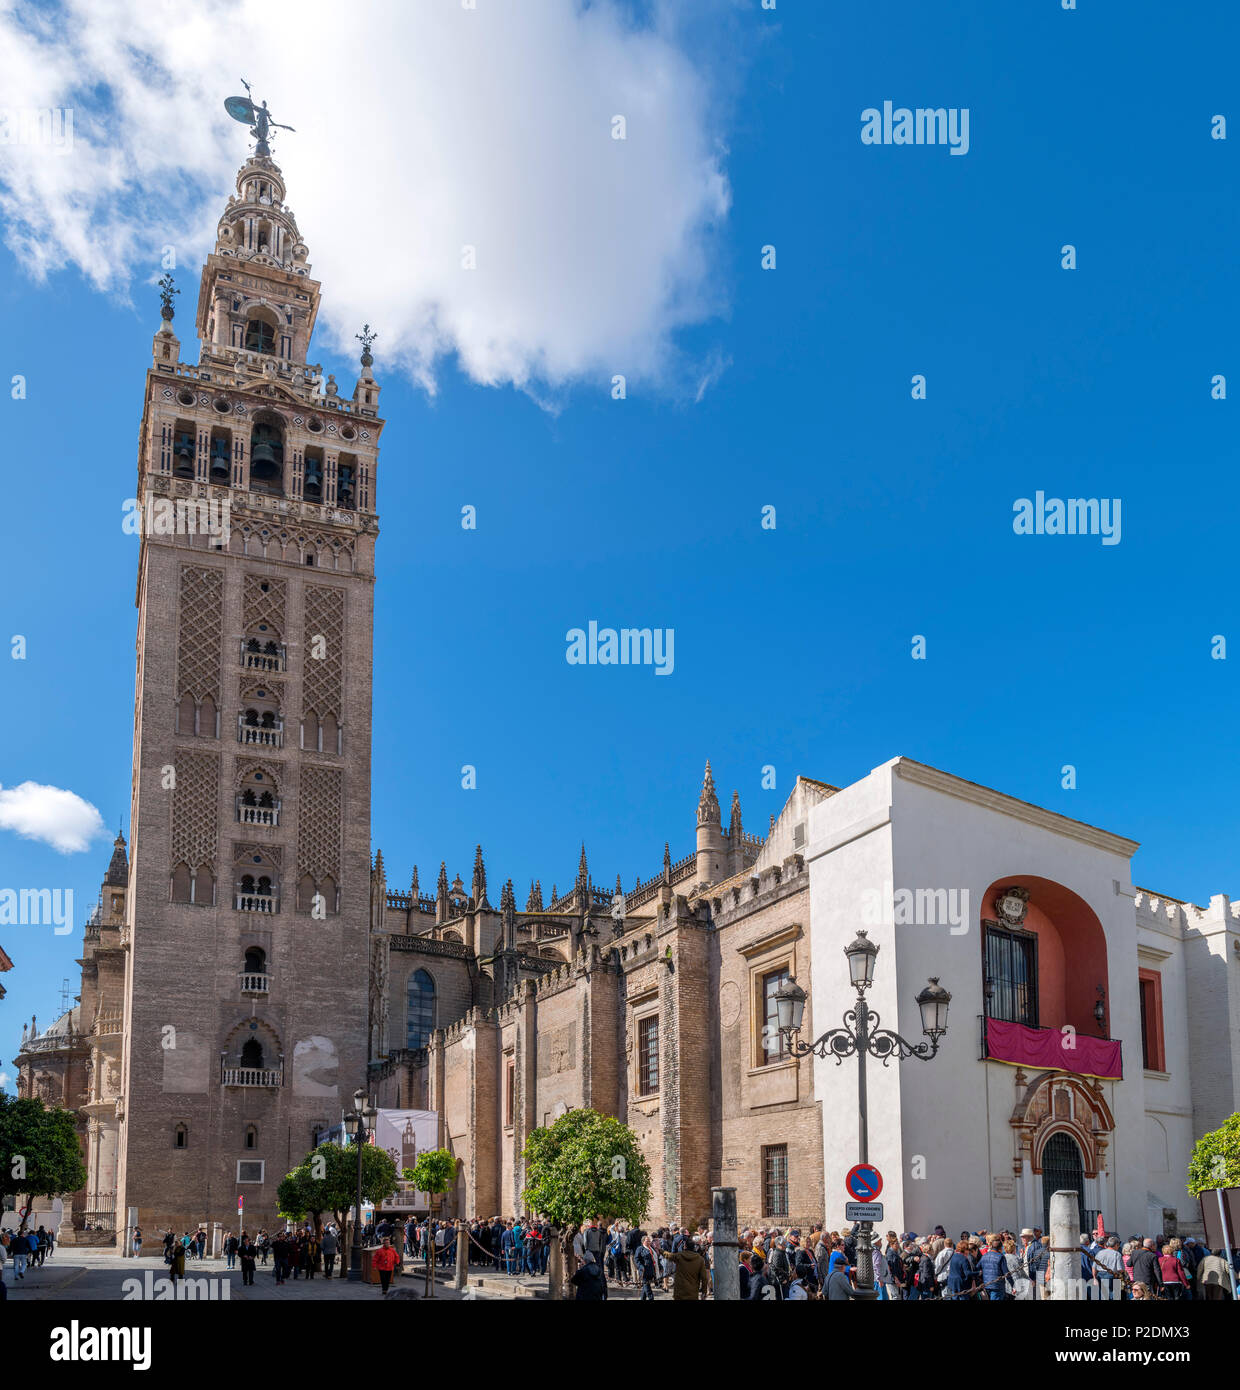 Tourists queuing outside the Giralda tower and Cathedral, Seville ( Sevilla ), Andalucia, Spain - Stock Image